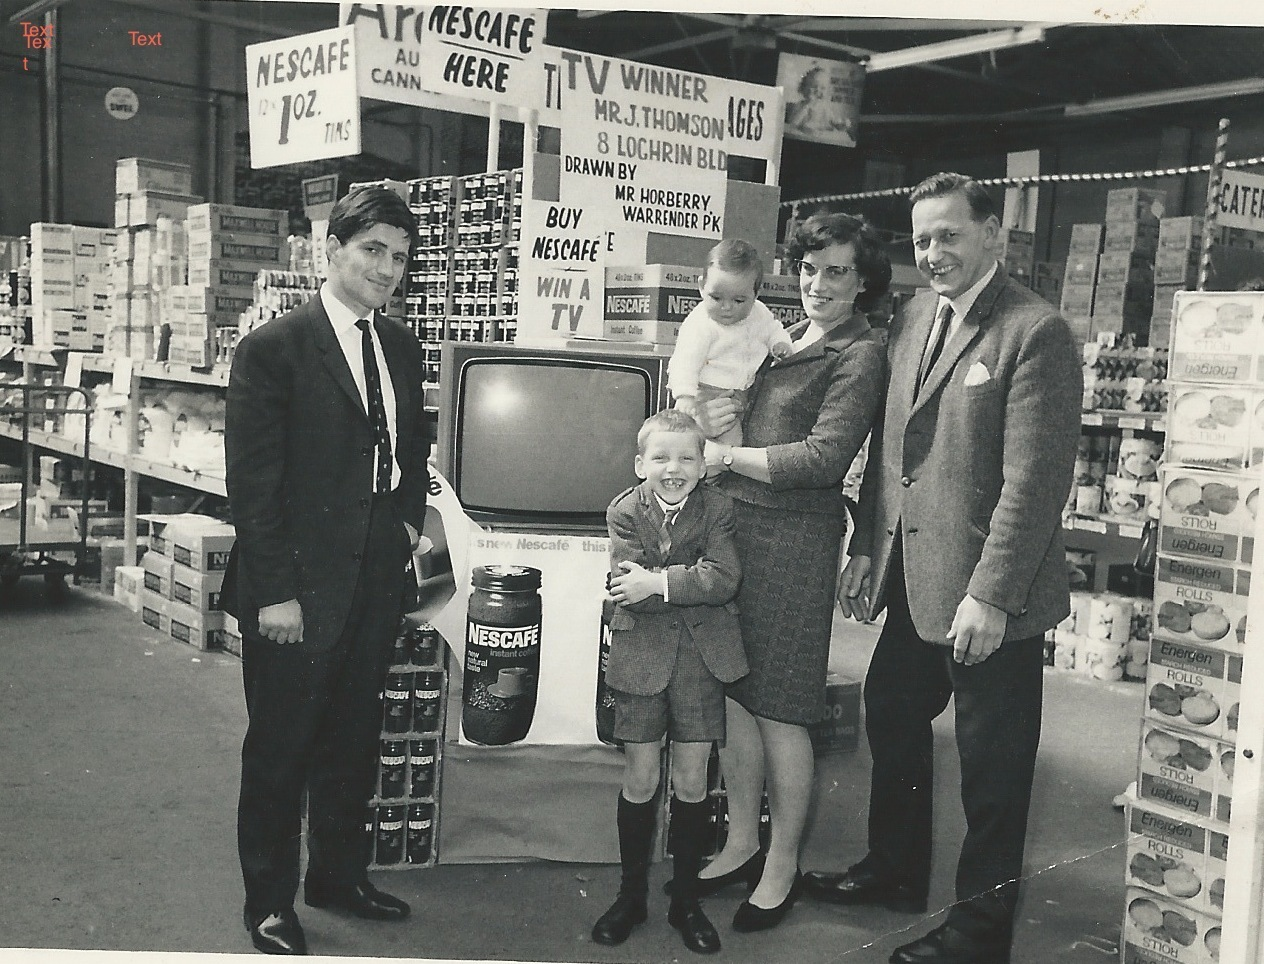 Cash & Carry Slateford Road - Charlie Taylor (owner of James Thomson & Sons Ltd) winning a TV in a Nescafe prize draw competition